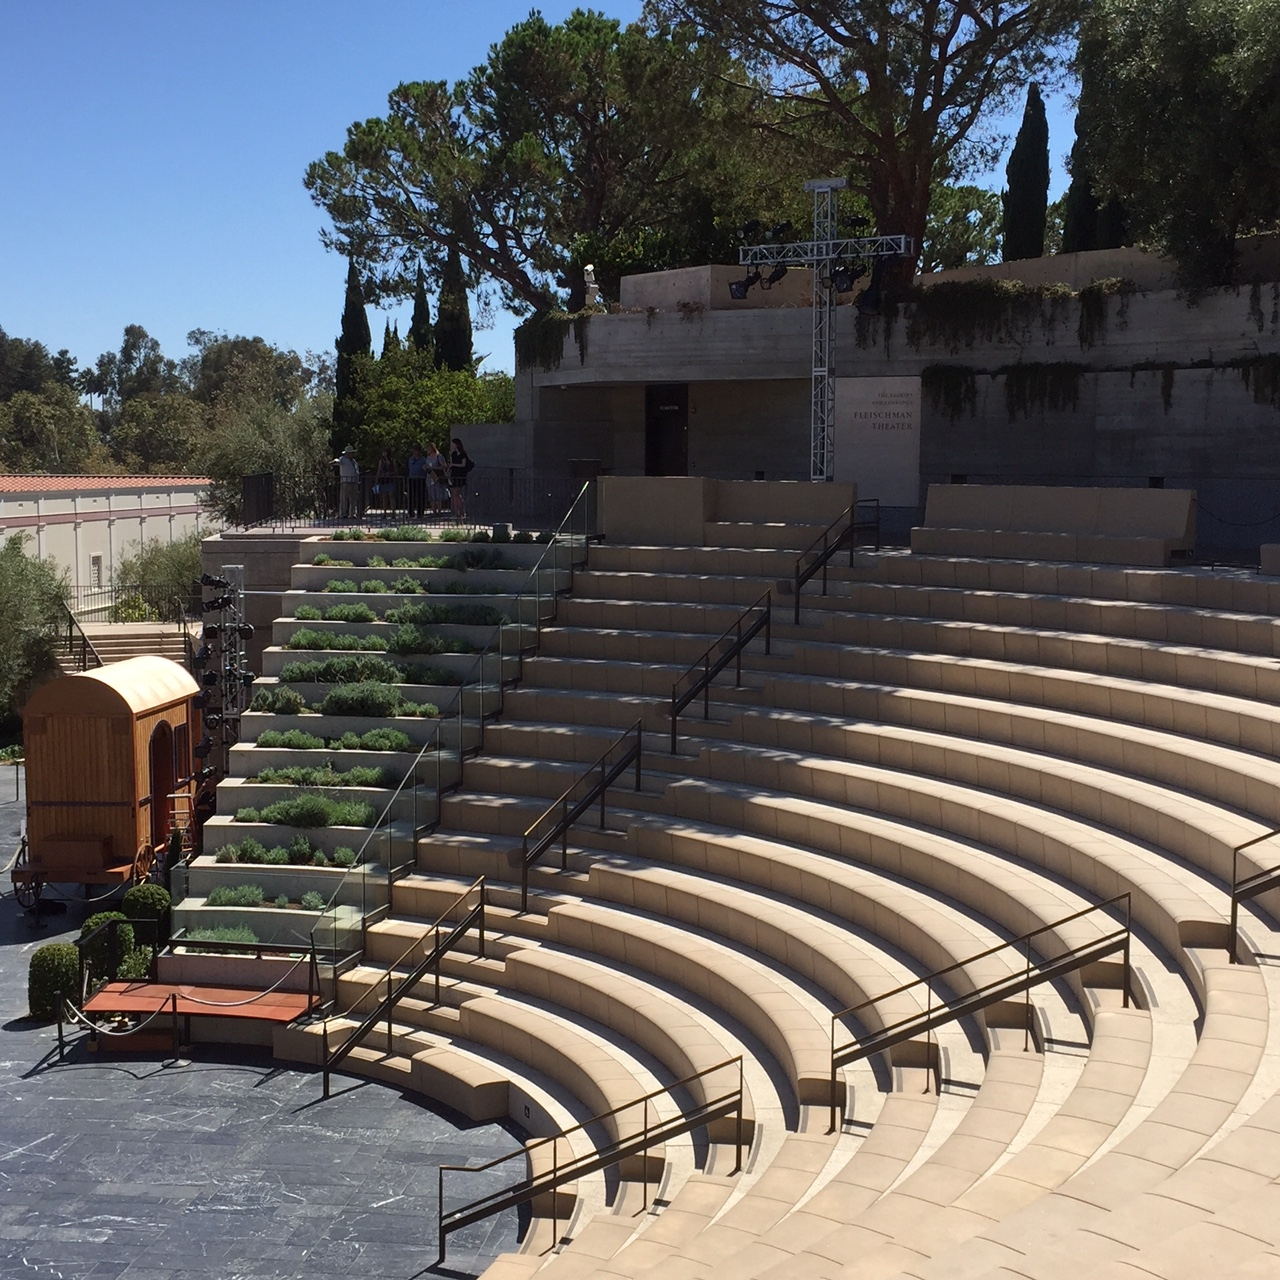 Getty Amphitheatre